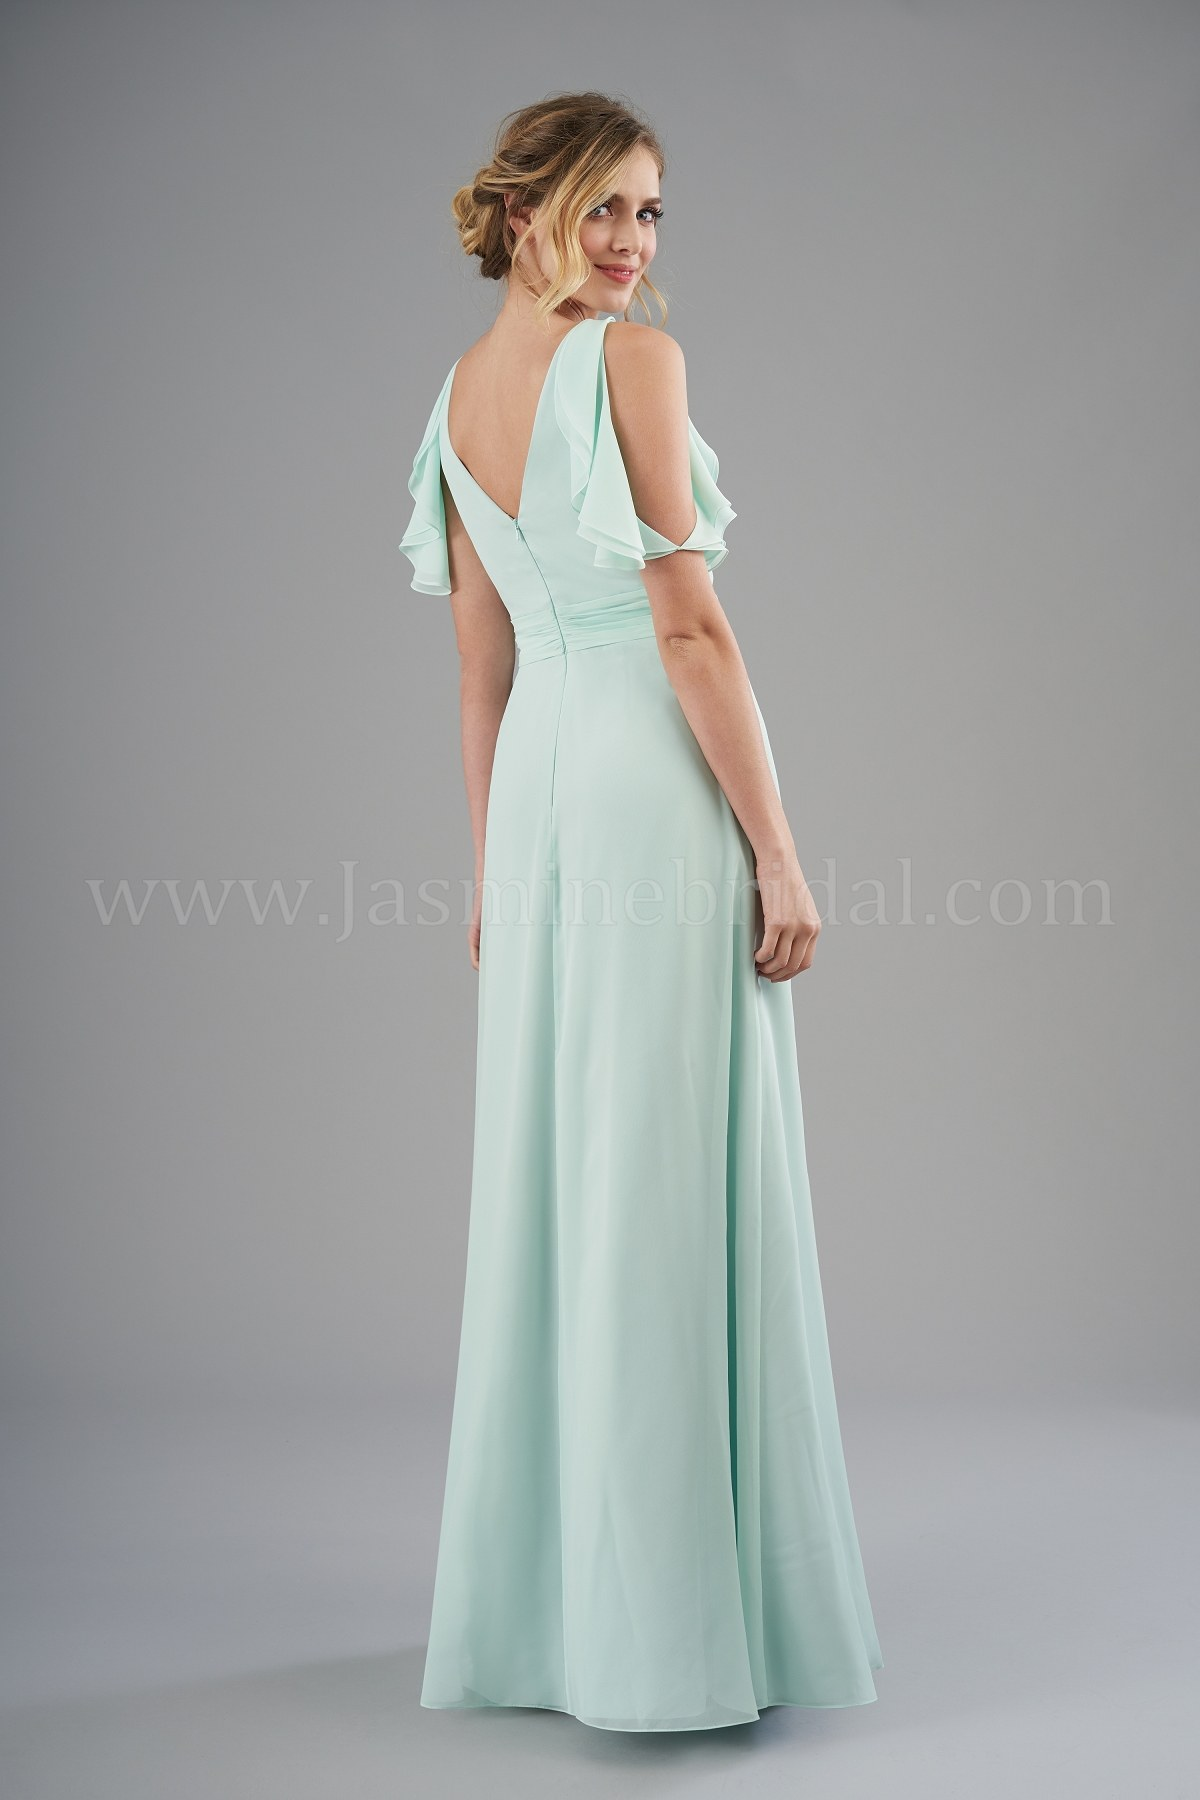 bridesmaid-dresses-B203054-B